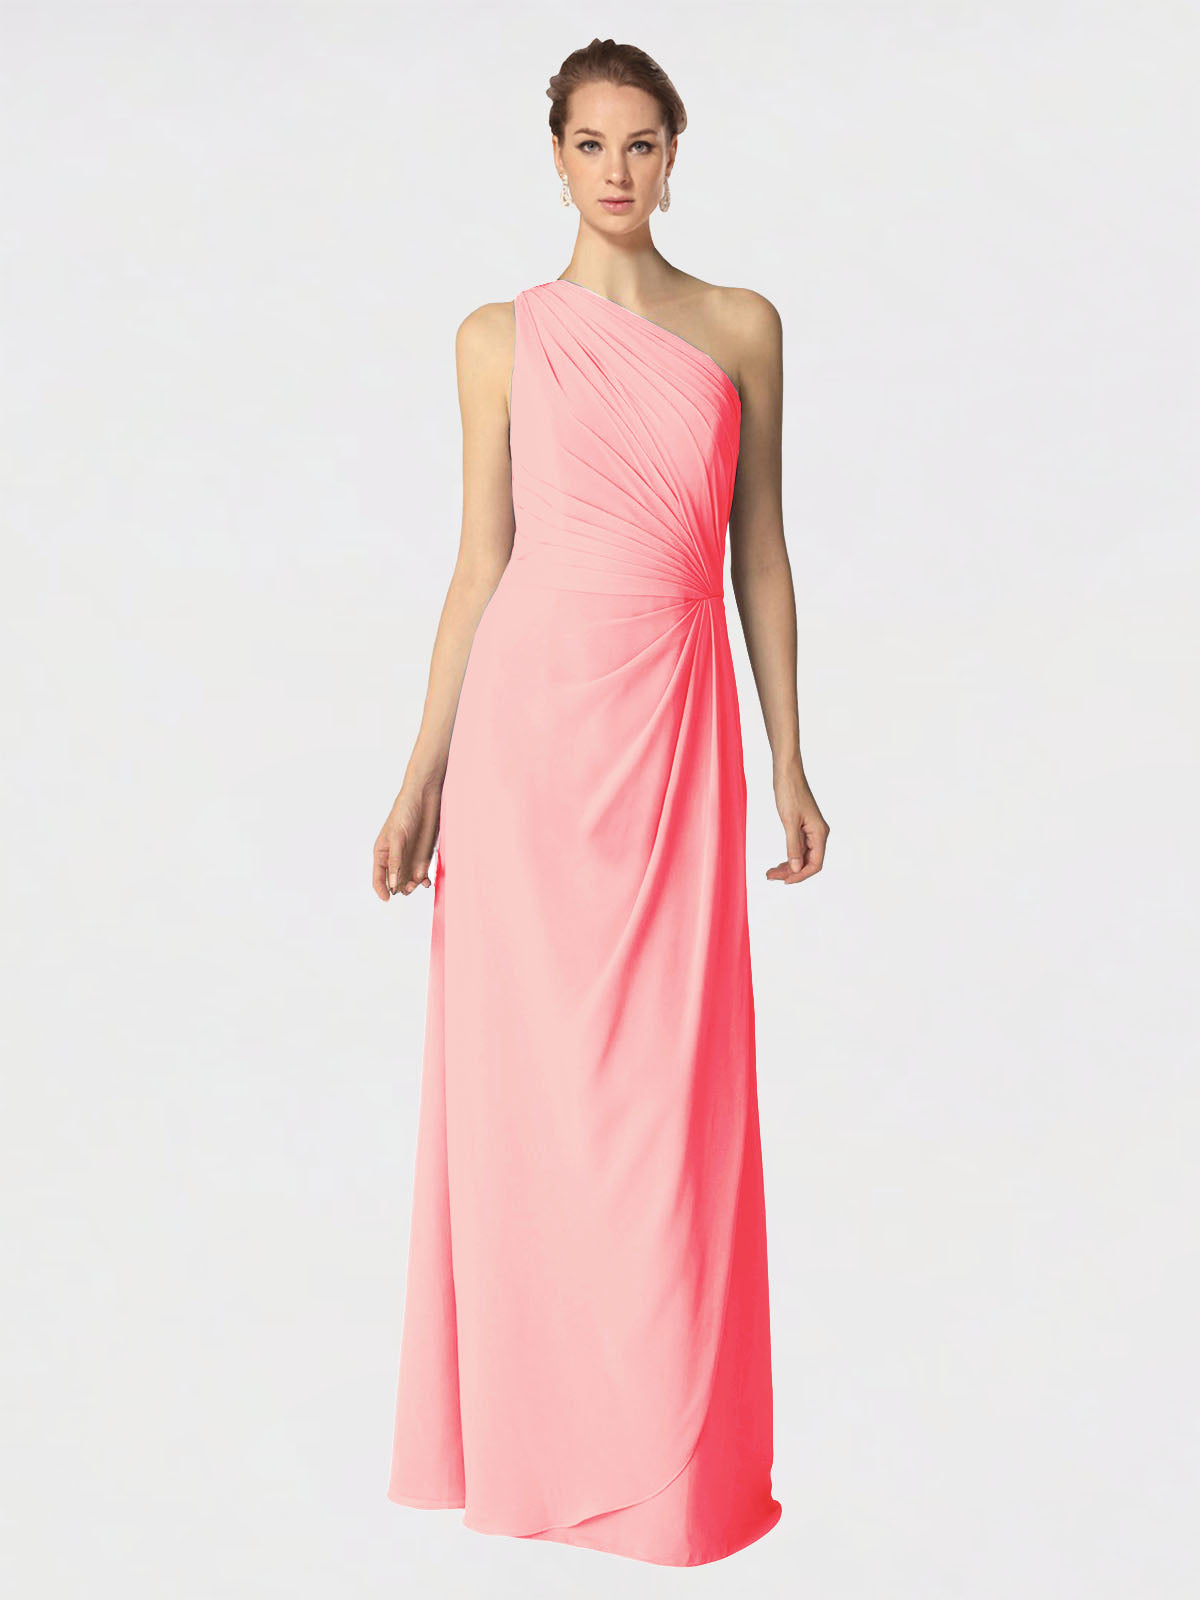 Long A-Line One Shoulder Sleeveless Salmon Chiffon Bridesmaid Dress Aurora